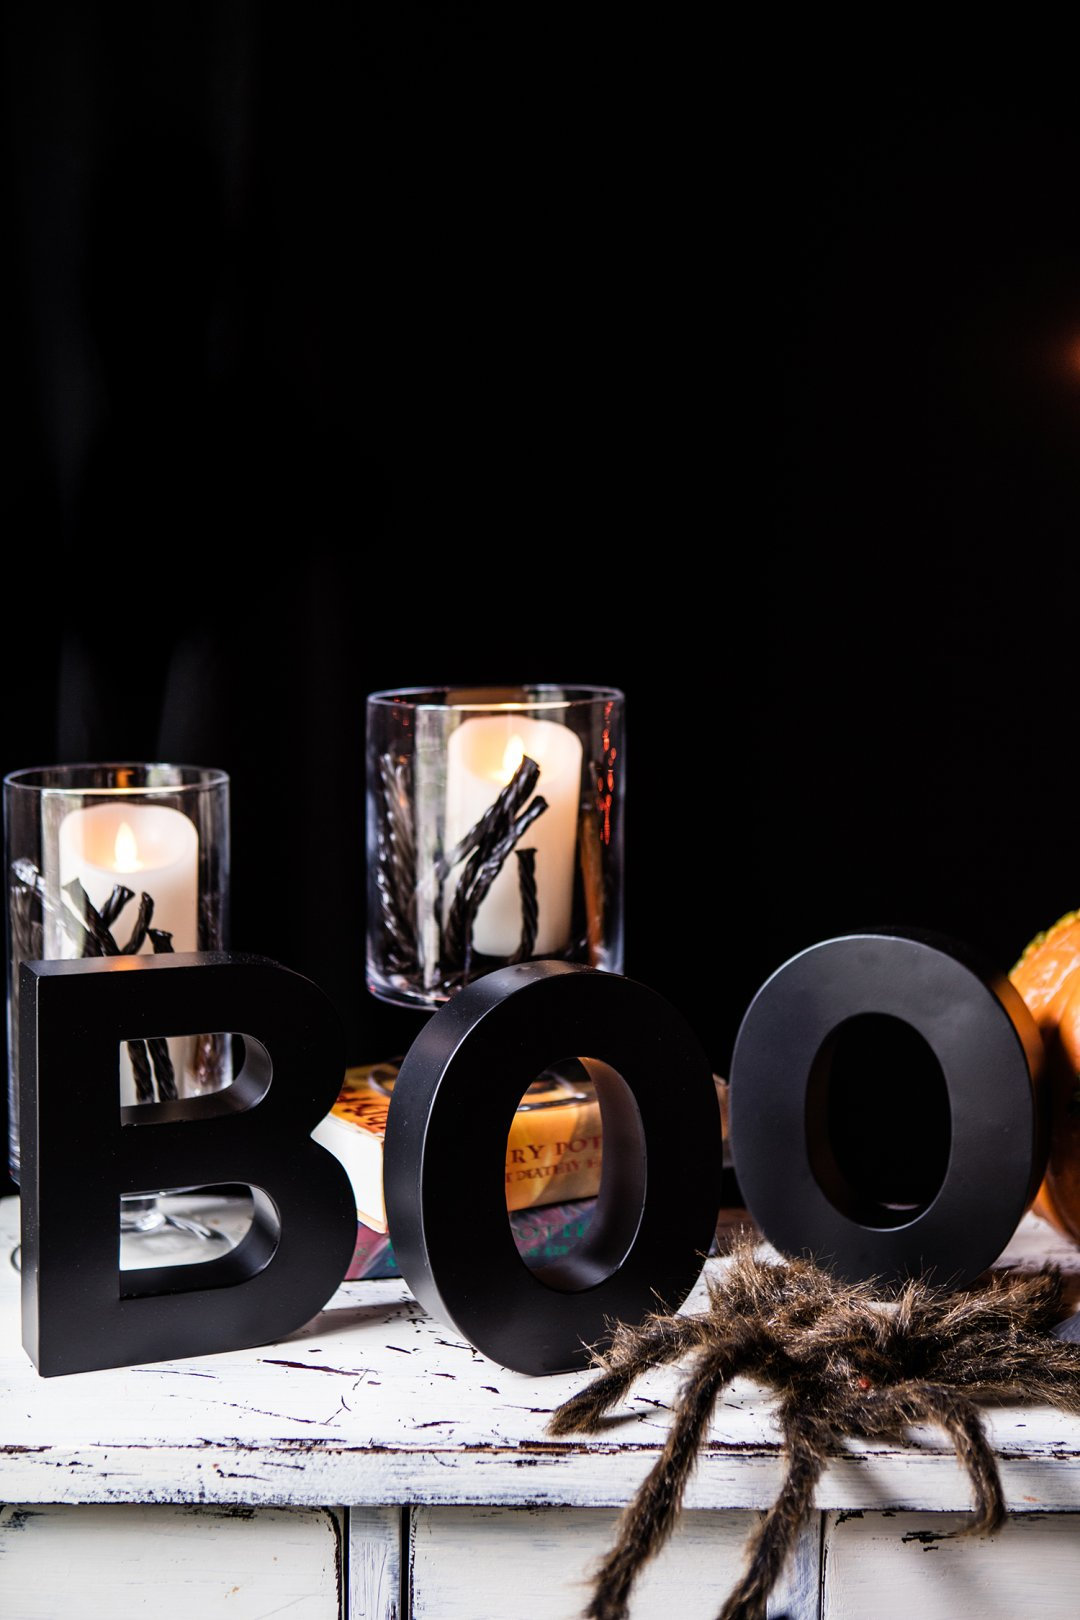 Halloween table decorations including candles in glass hurricanes and black standing letters spelling boo